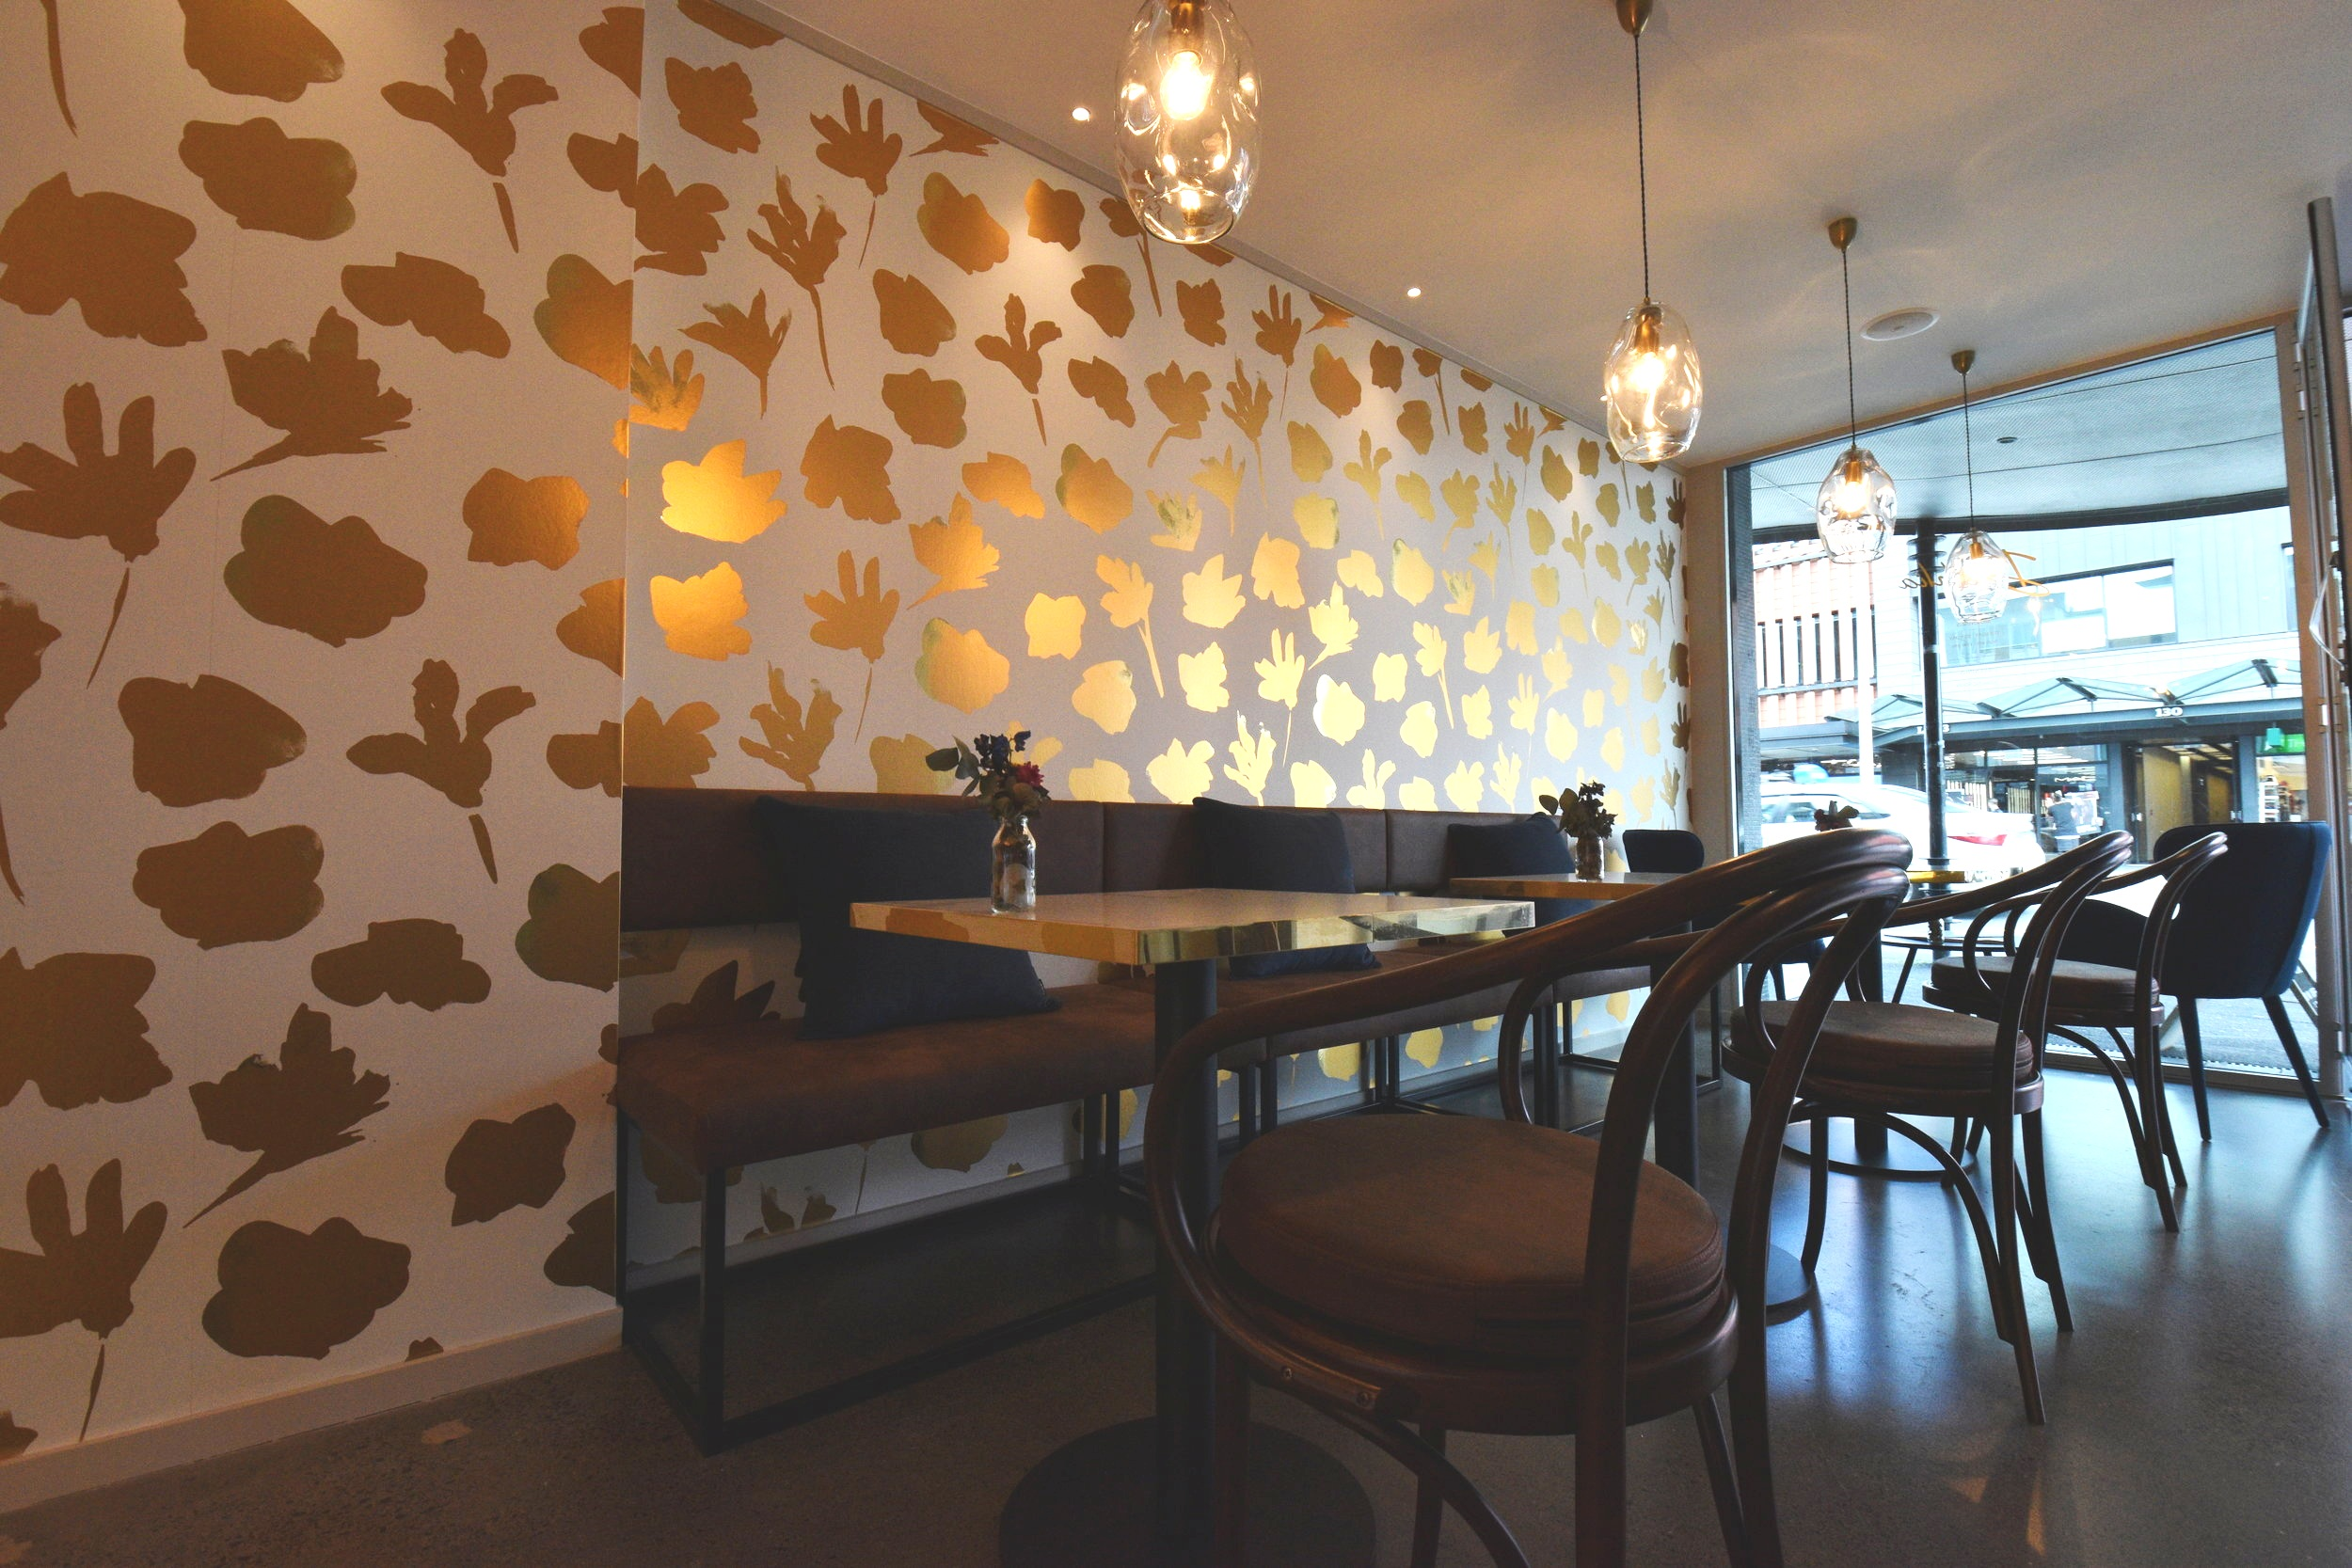 dahlia-ponsonby-dessert-patisserie-coffee-hospitality-design-small-spaces-seating